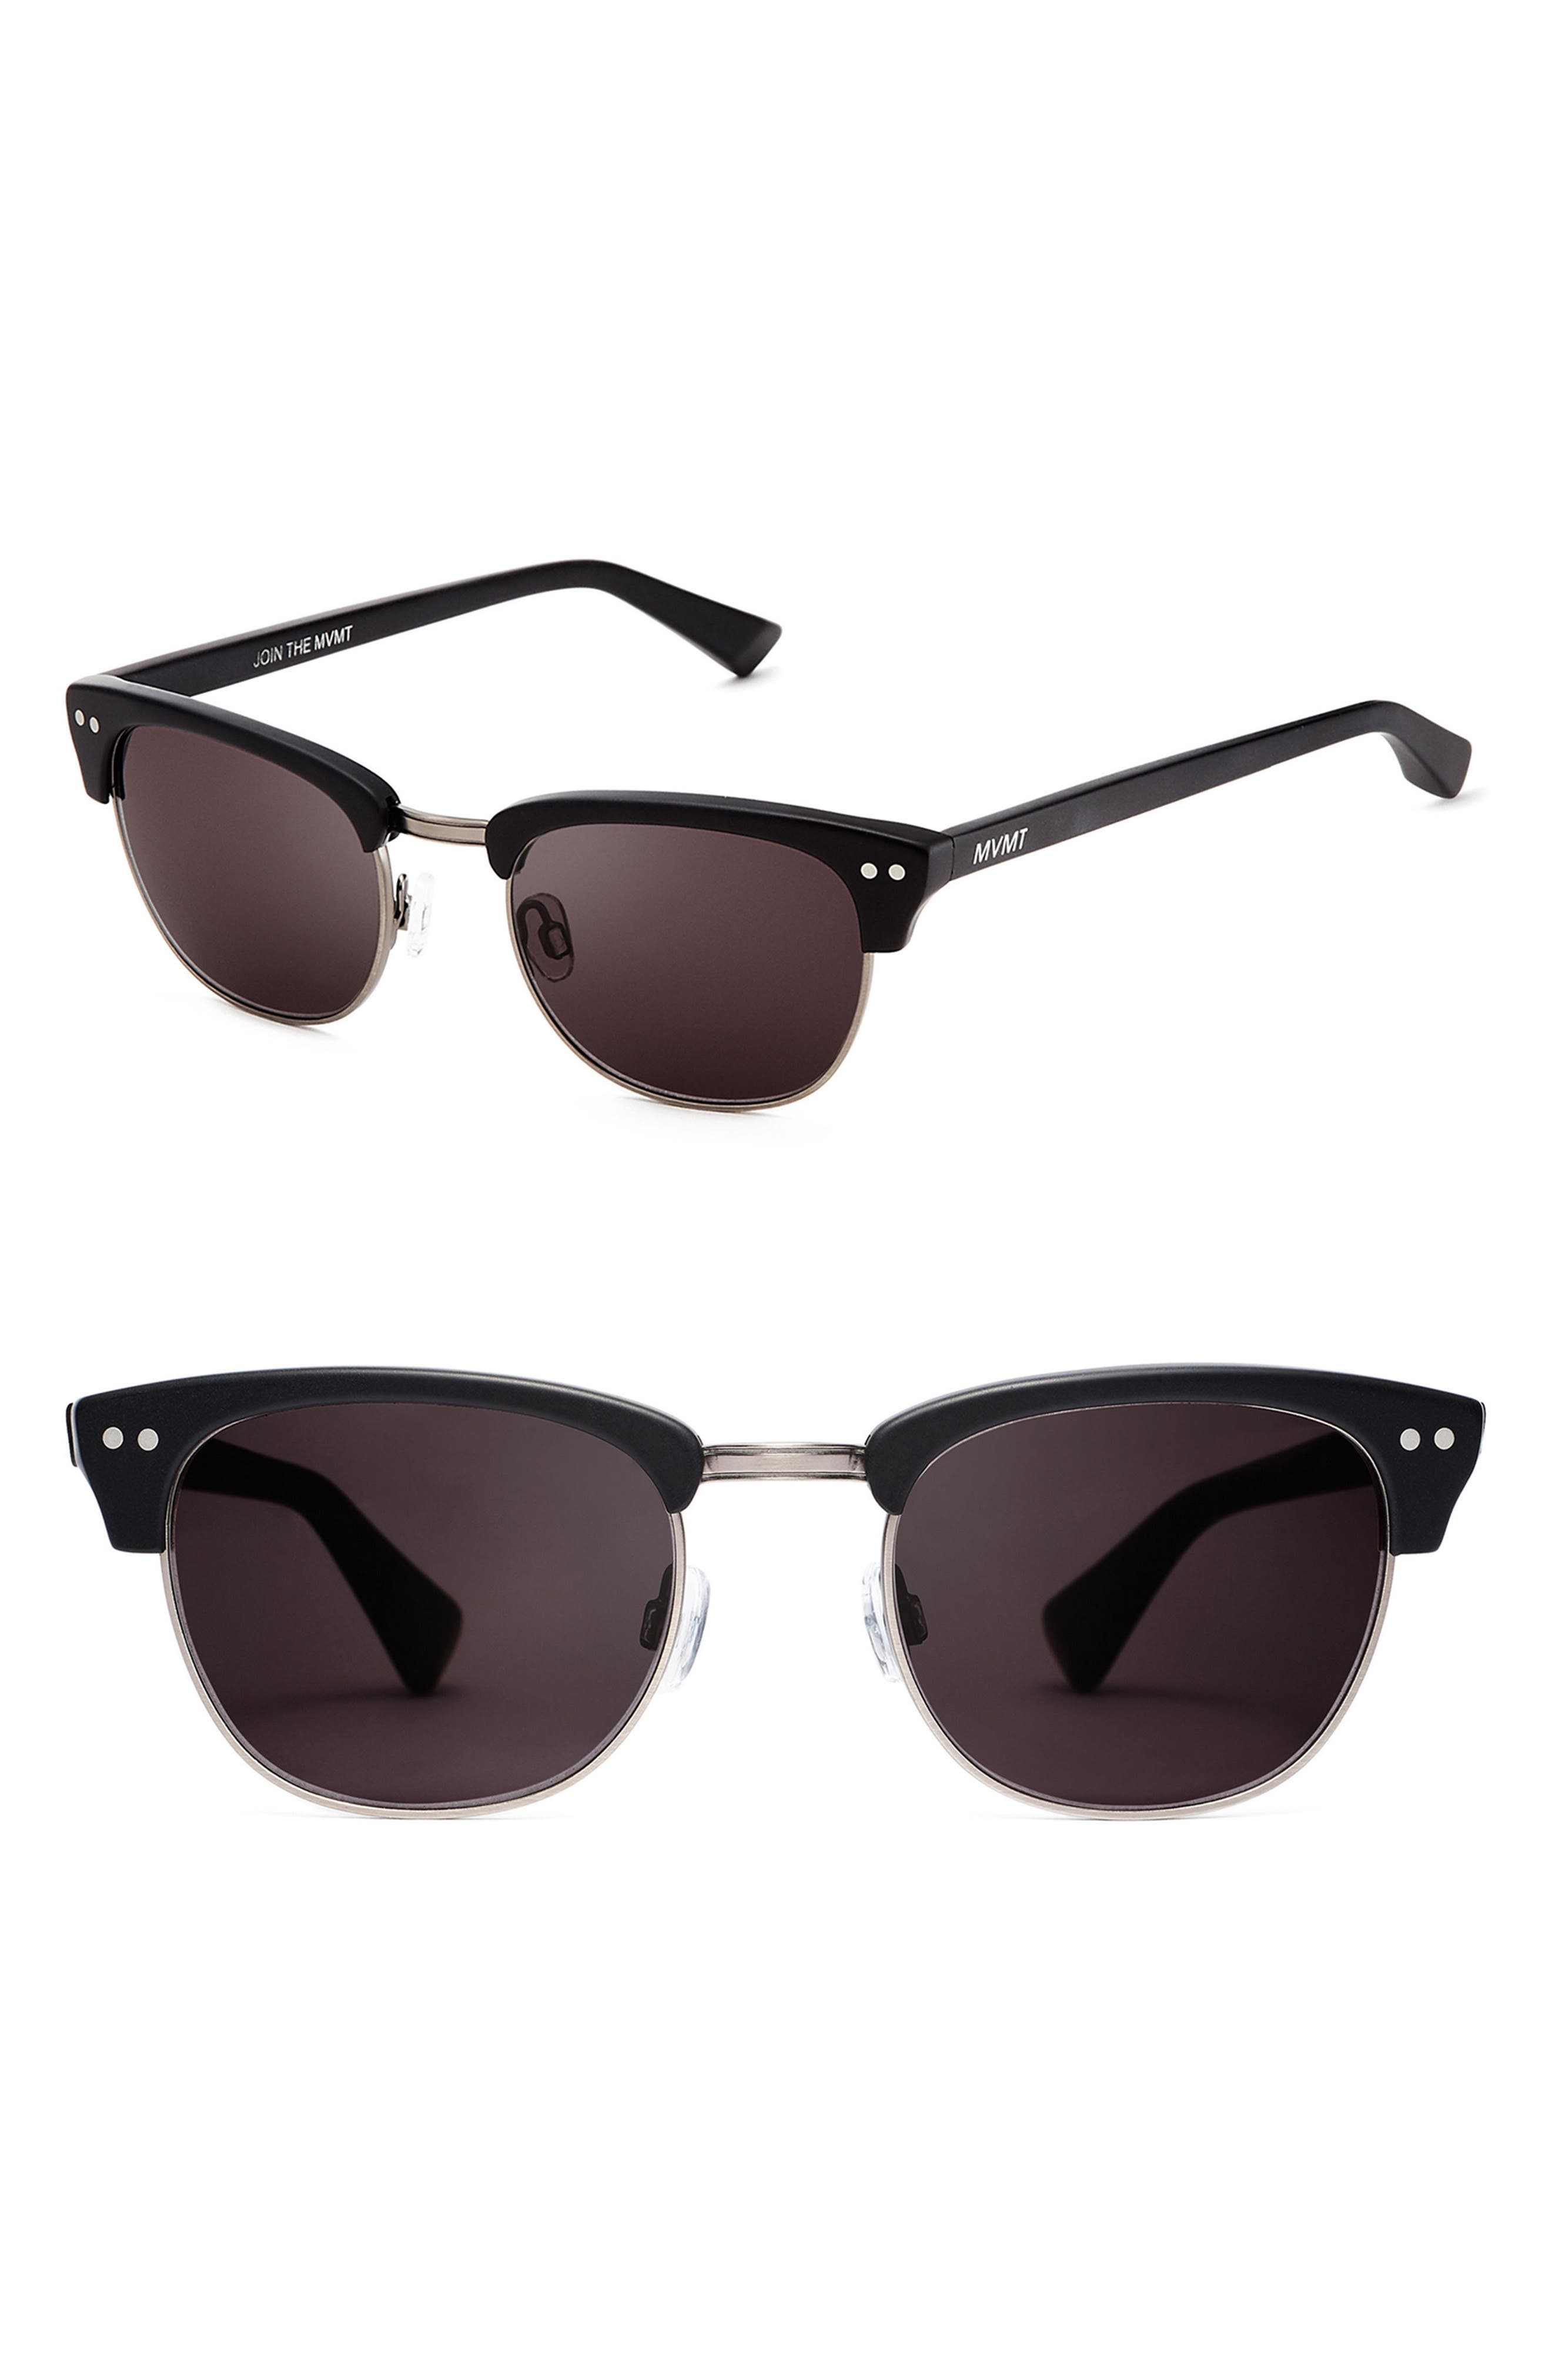 Legend 49mm Polarized Sunglasses,                             Main thumbnail 1, color,                             MATTE BLACK